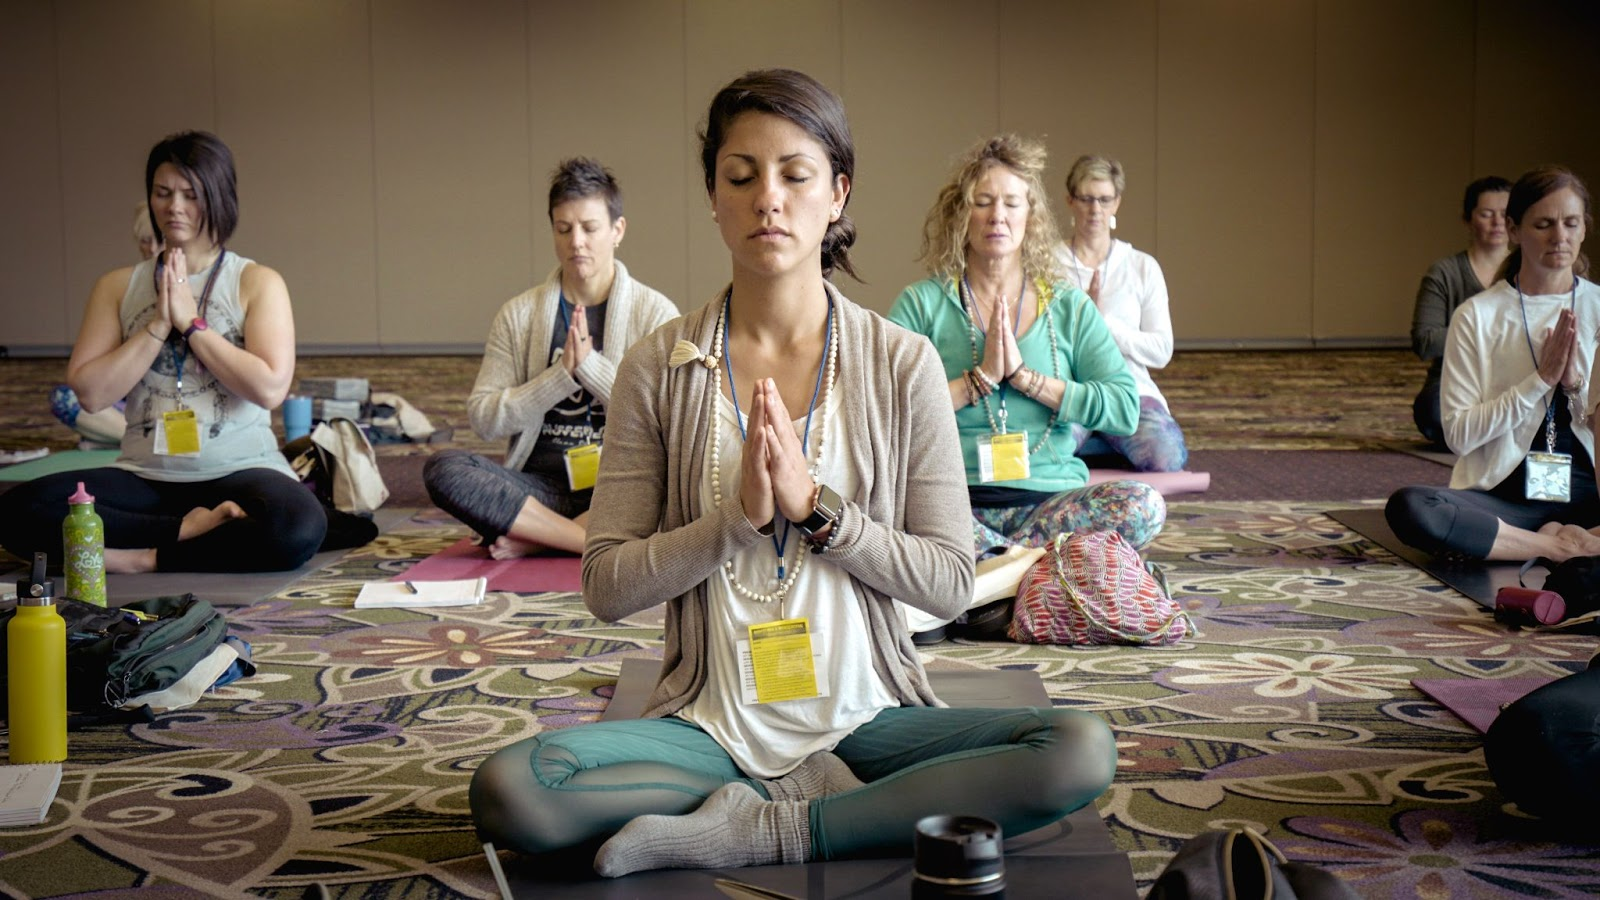 Celebrate Yoga Day with a unique theme for your class!